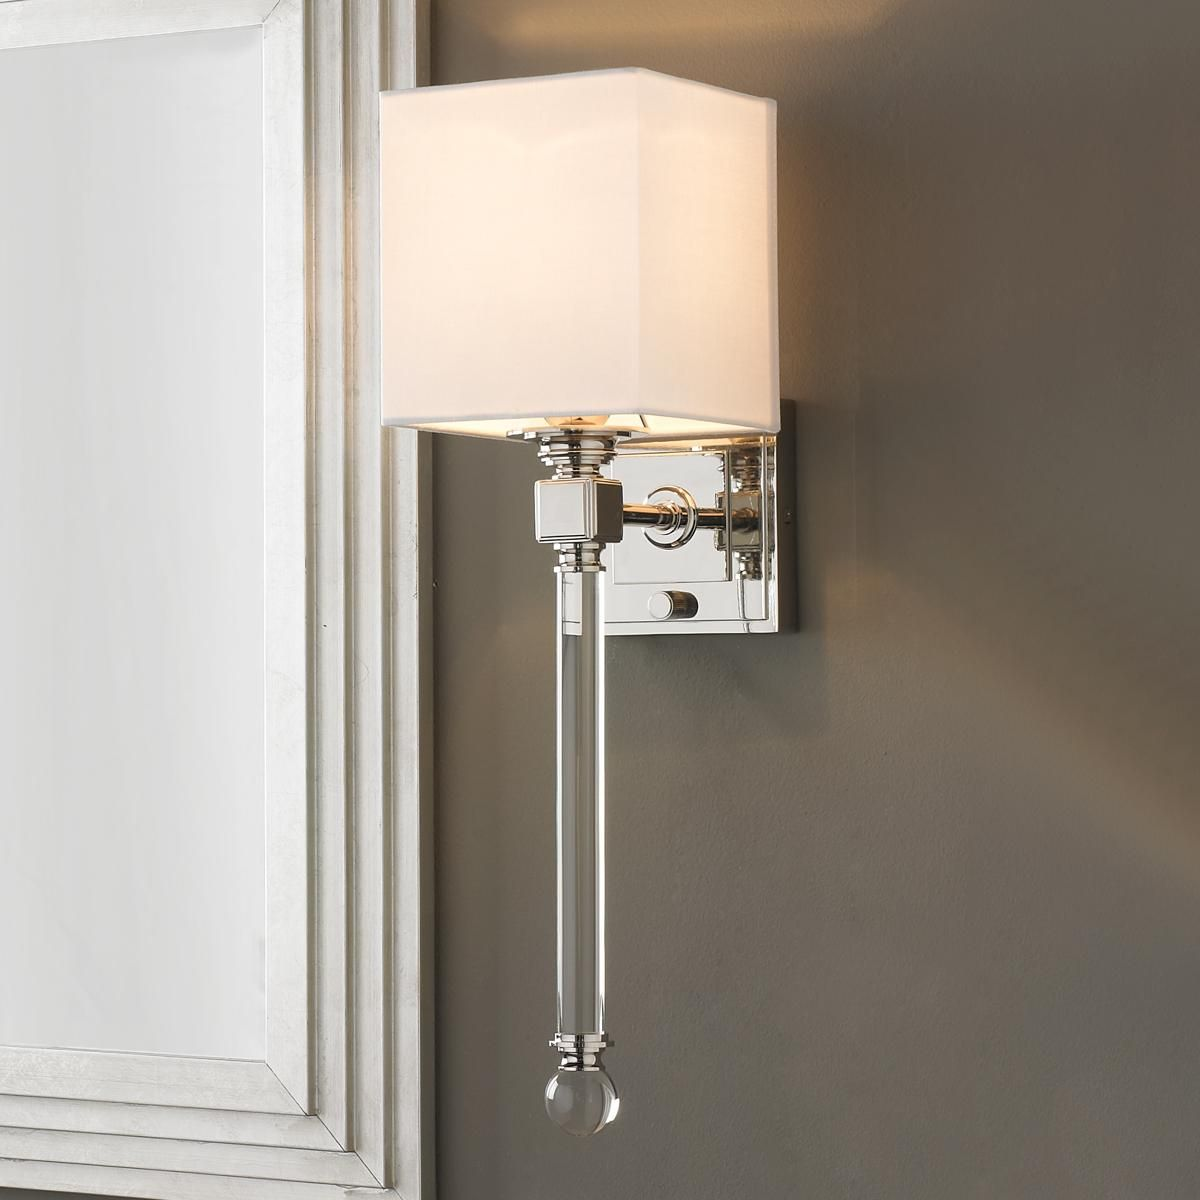 White Bathroom Wall Sconces : Chic Sophisticate Crystal Torch Wall Sconce Torches, Wall sconces and Crystals